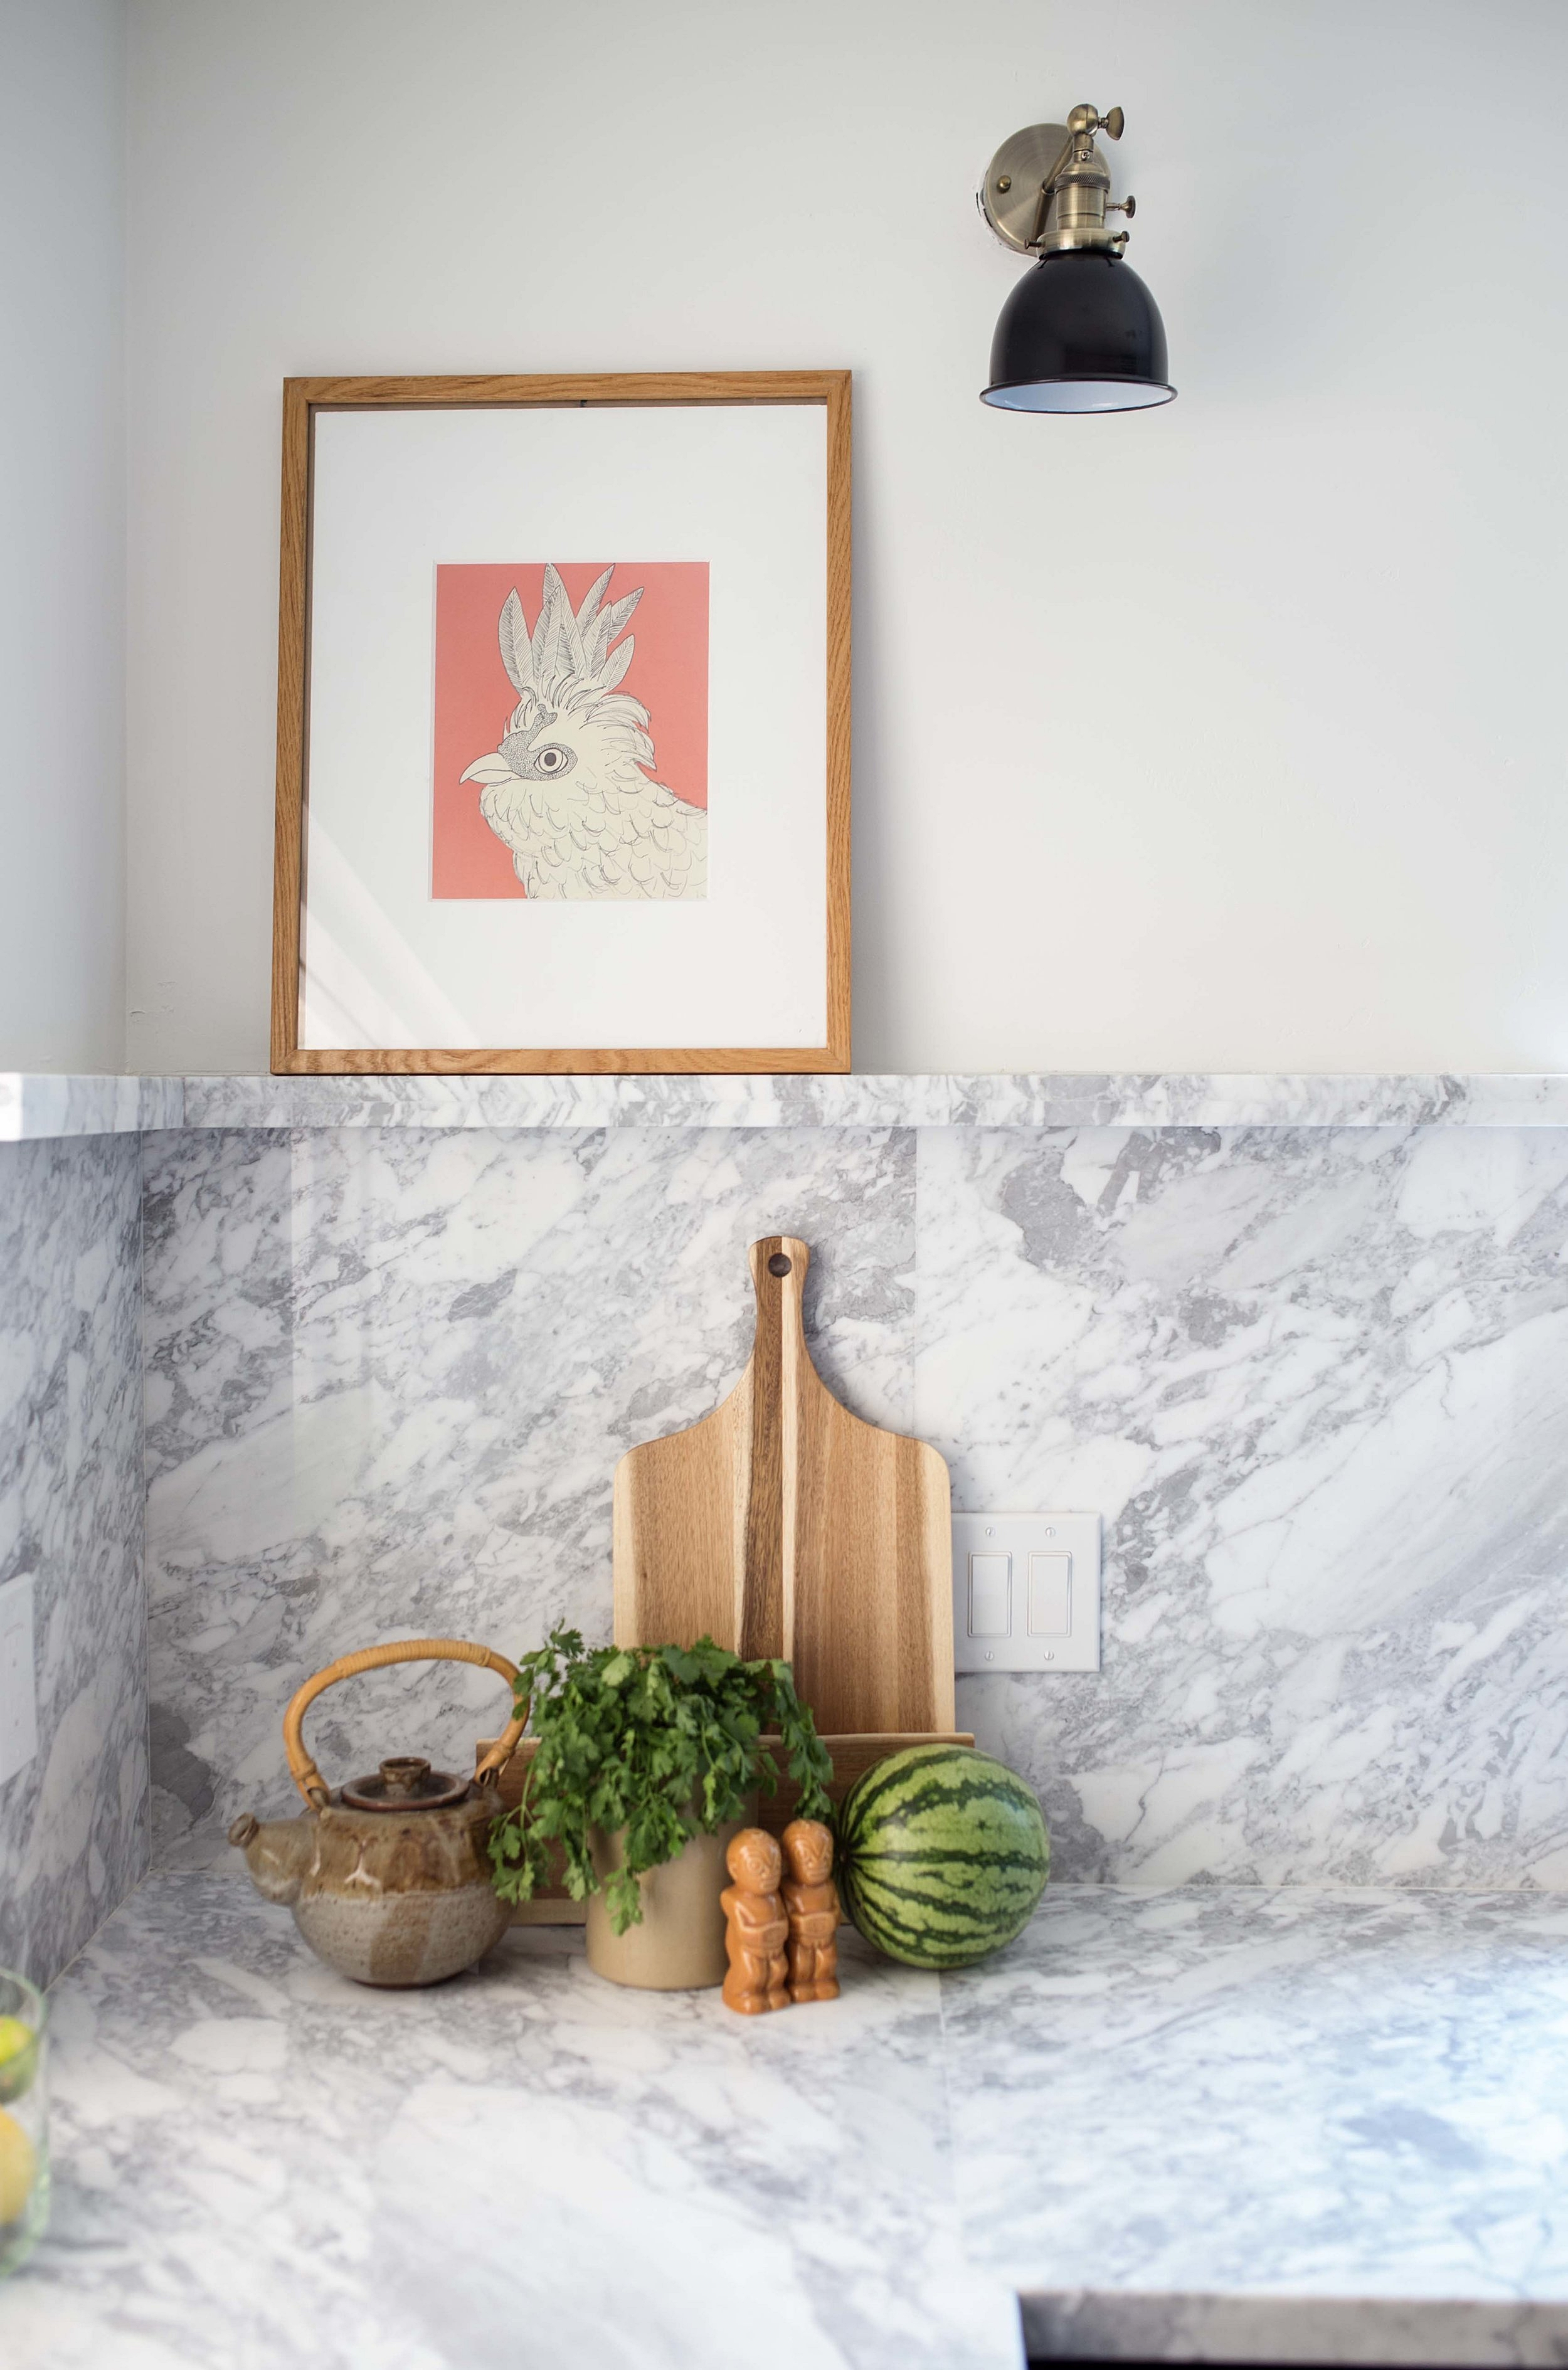 Marble curb backsplash